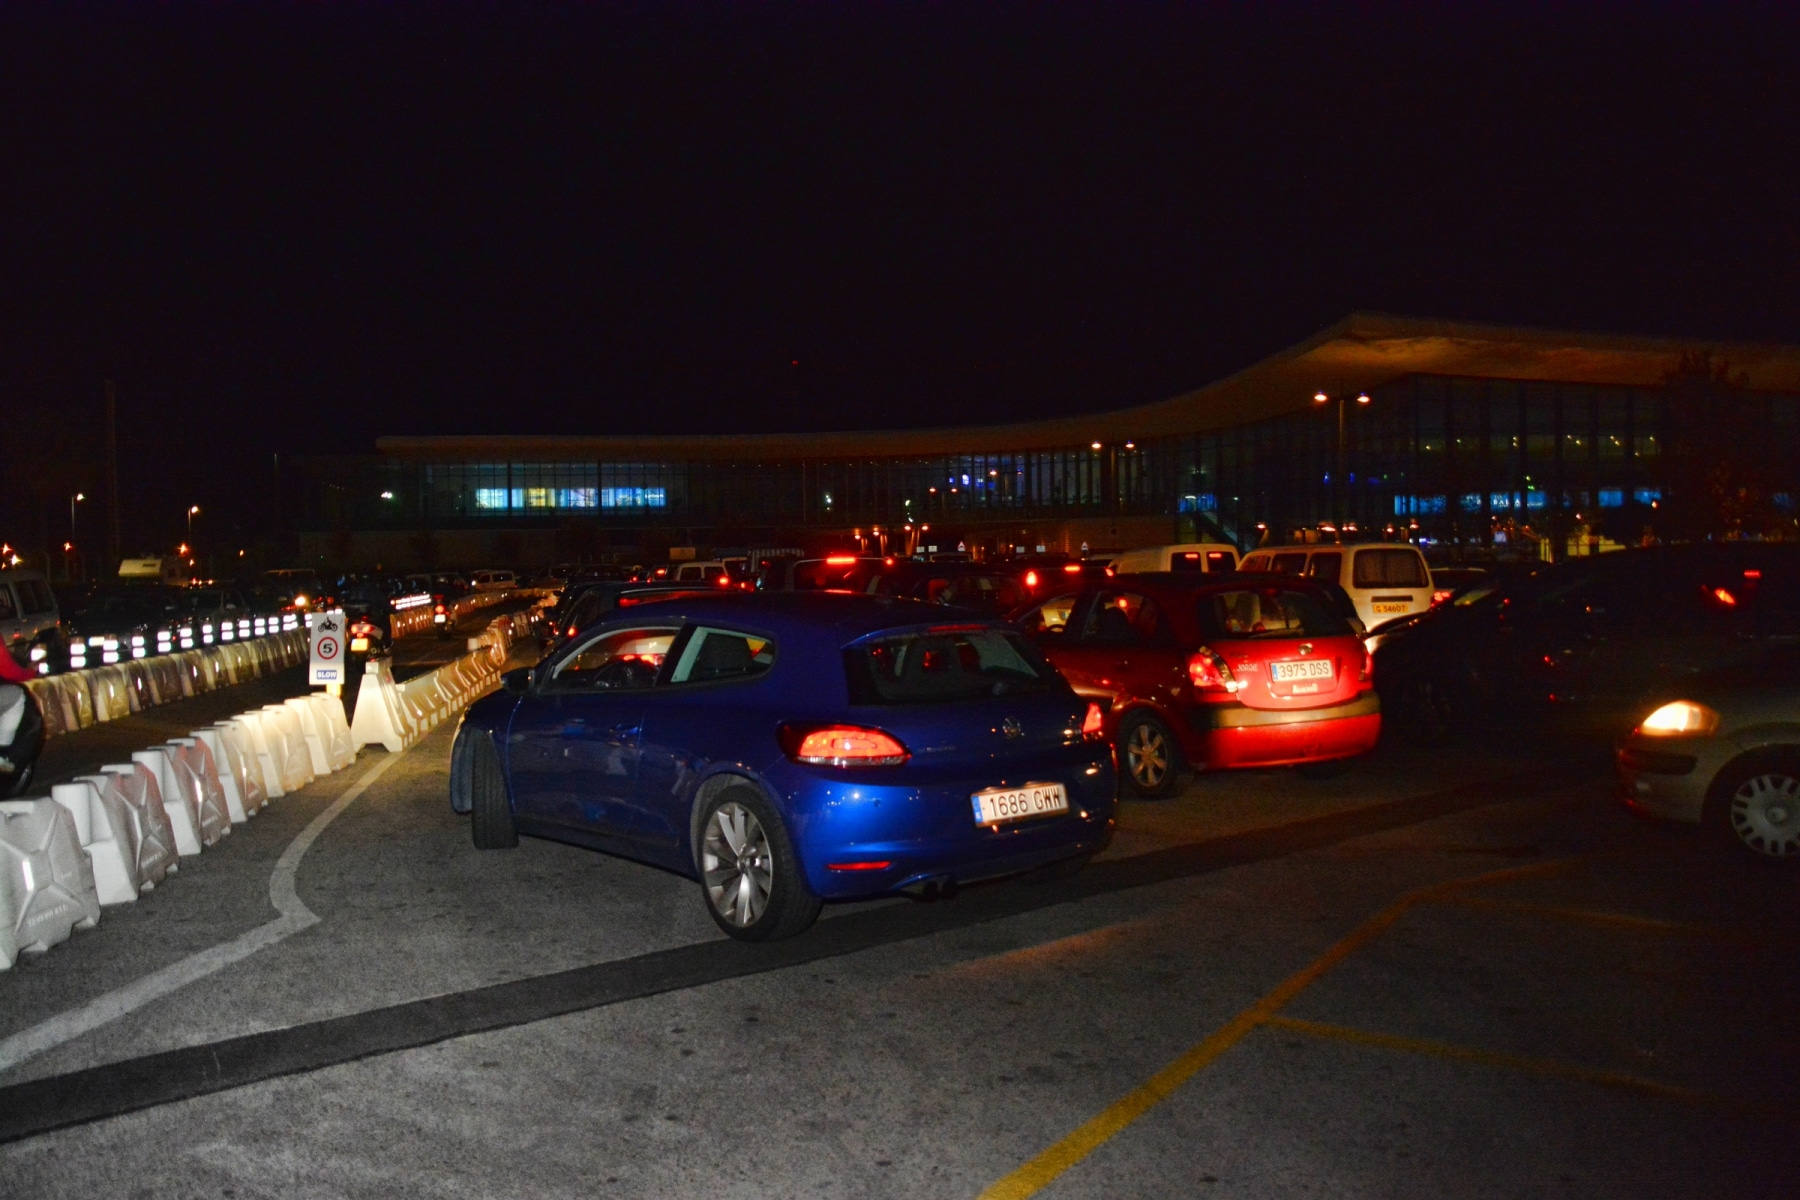 Gibraltar - Drivers wait for hours to cross border